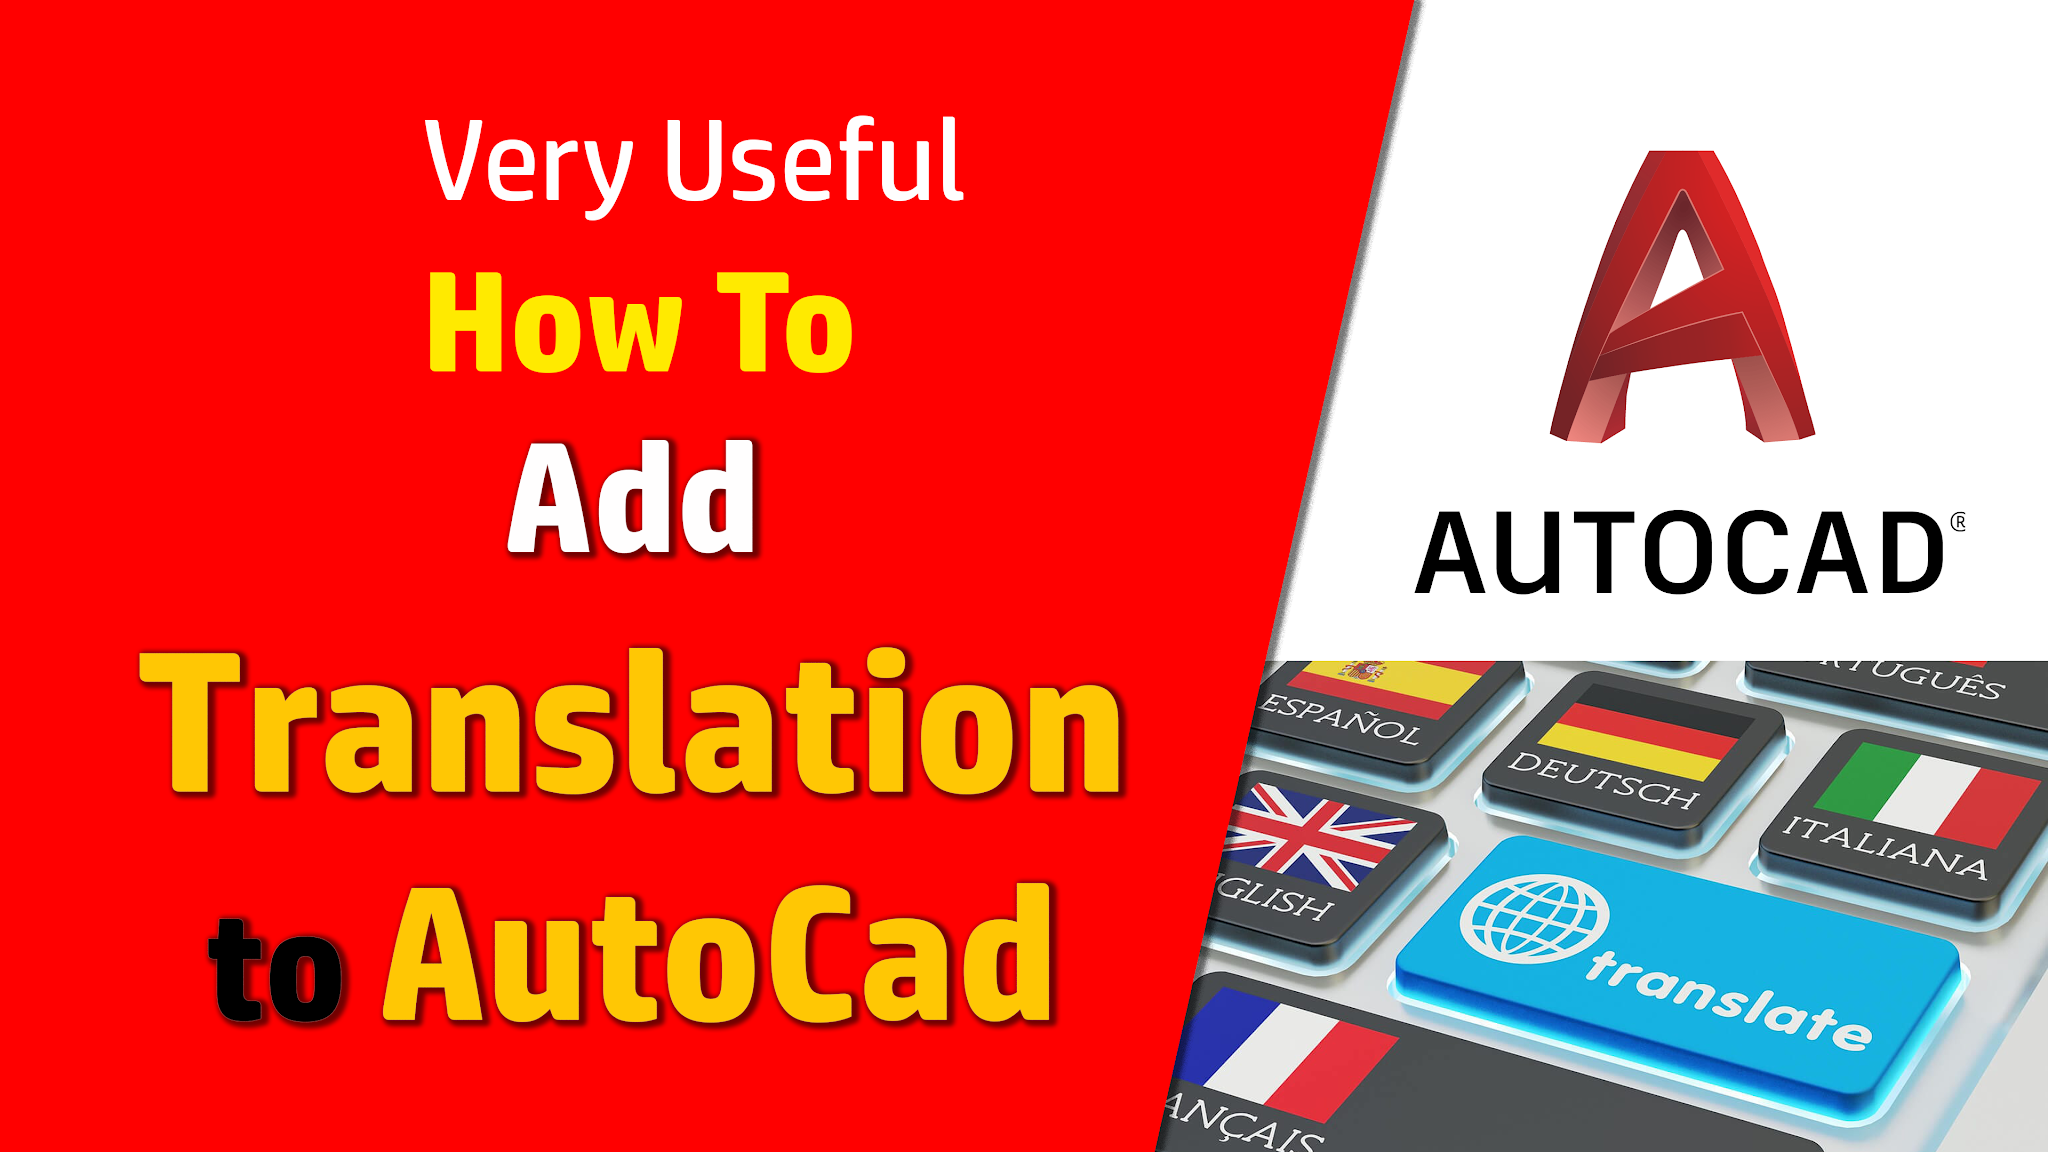 Very useful: How to add translation to AutoCad